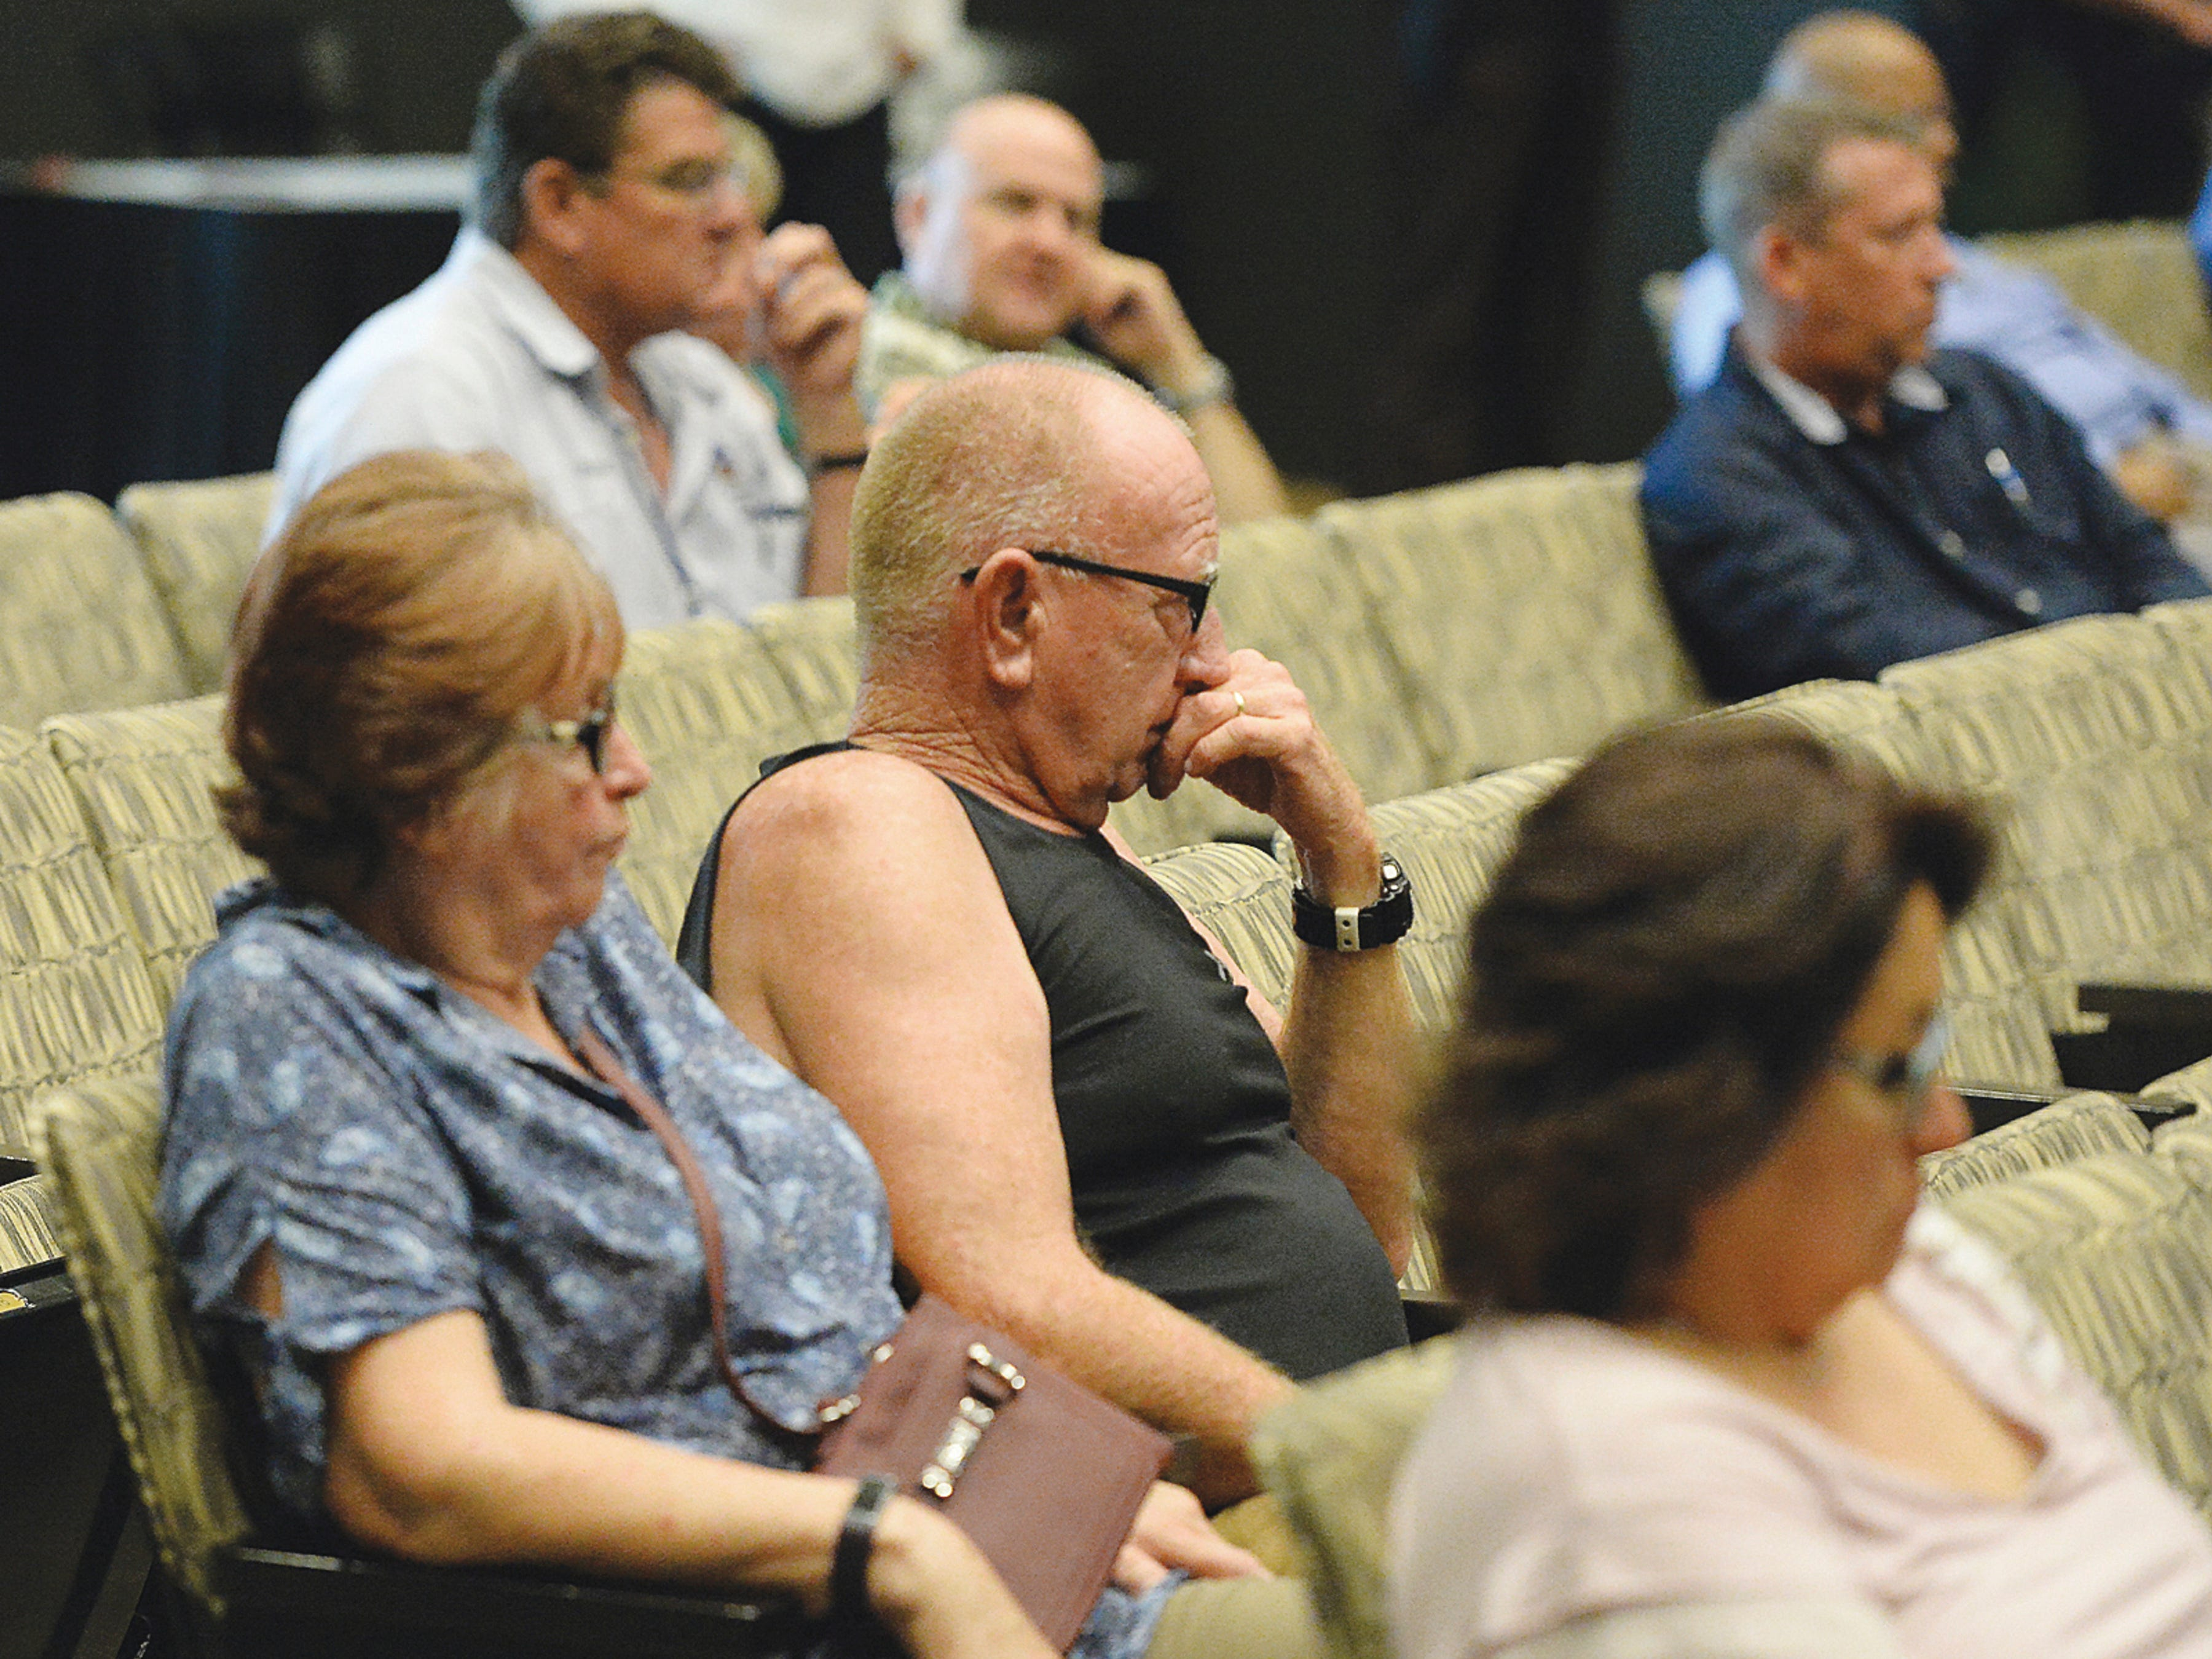 Members of the audience listen to Yuma Mayor Doug Nicholls' news conference about the current humanitarian crisis in the border region due to high volumes of illegal migrant crossings on  March 28, 2019, in Yuma.